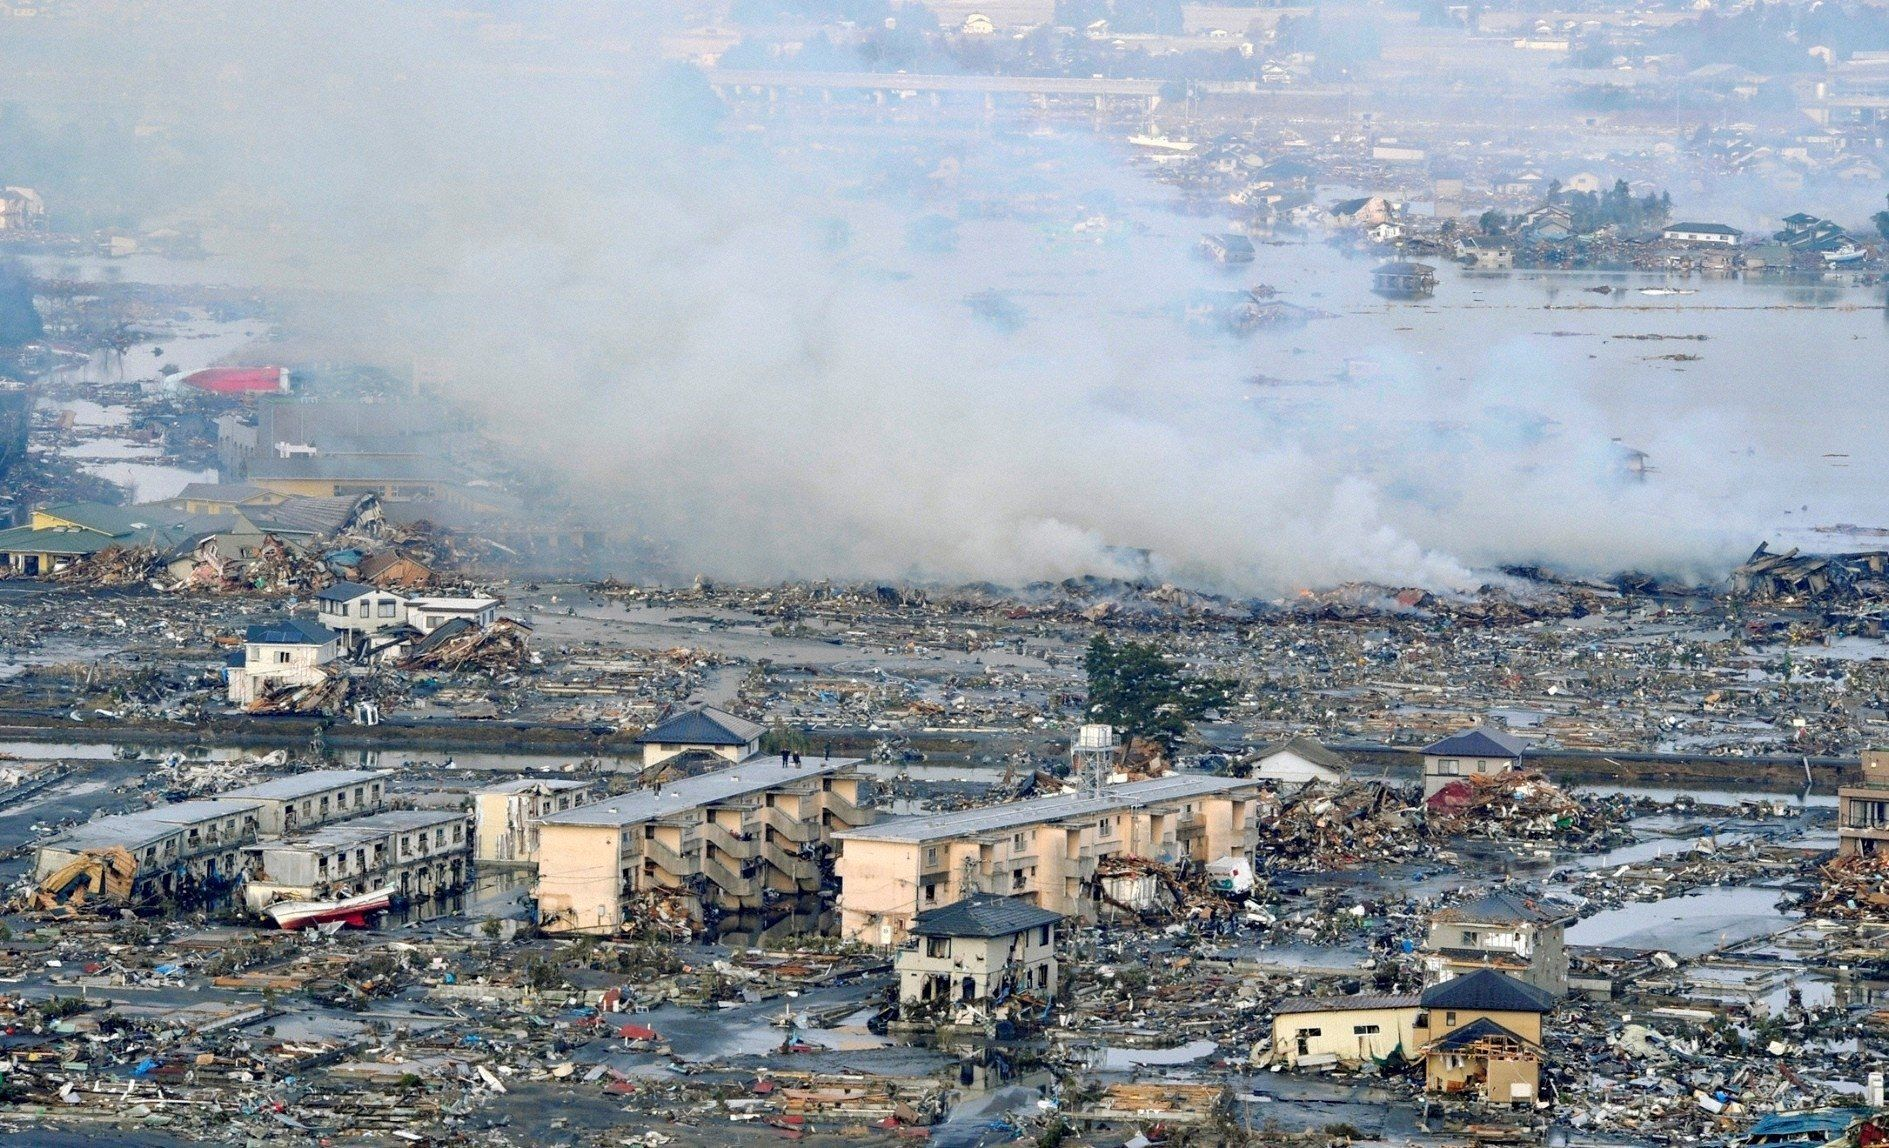 1889x1148 Japan Tsunami - Earthquake March 2011 Wallpaper and Background ...